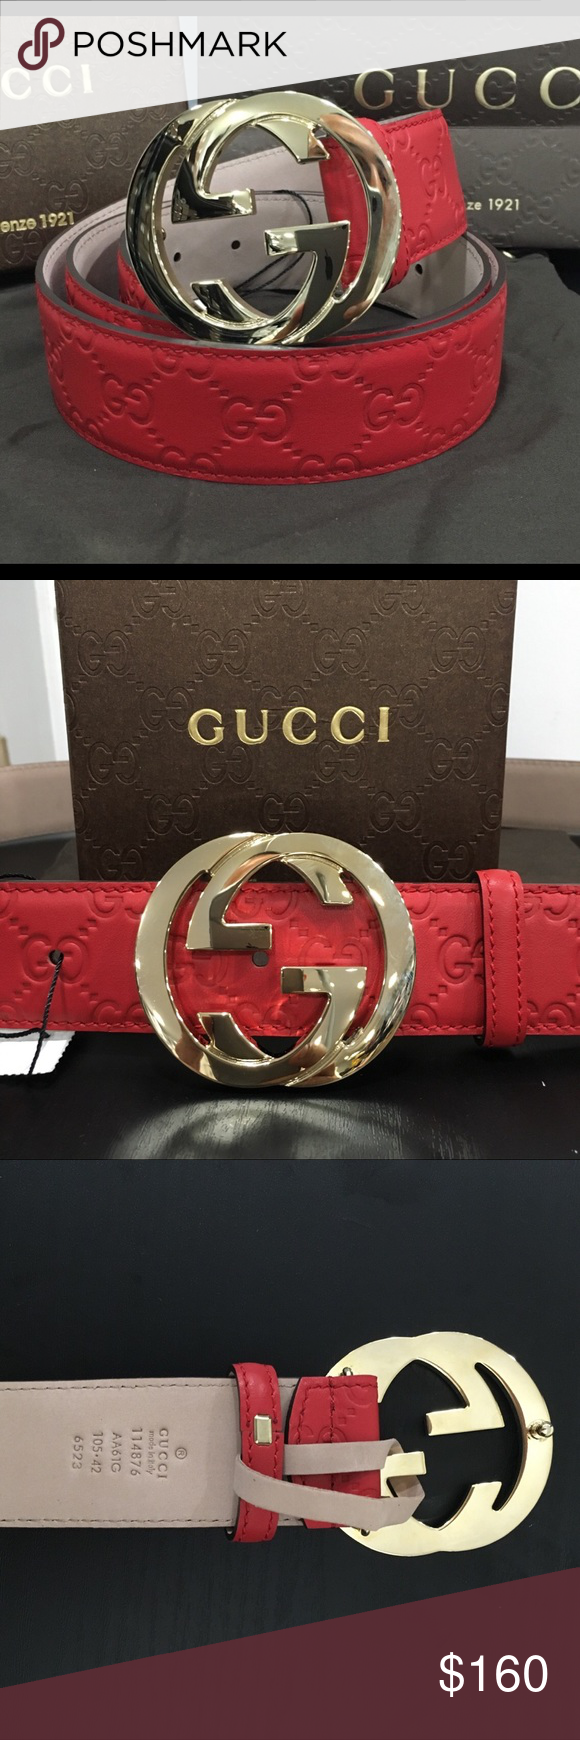 """408fb843d7fd """"ONE DAY ONLY"""" NWT Red leather Gucci belt New Gucci Belt Red leather Gold  interlocking GG buckle Comes with dust bag and box Happy poshing!"""